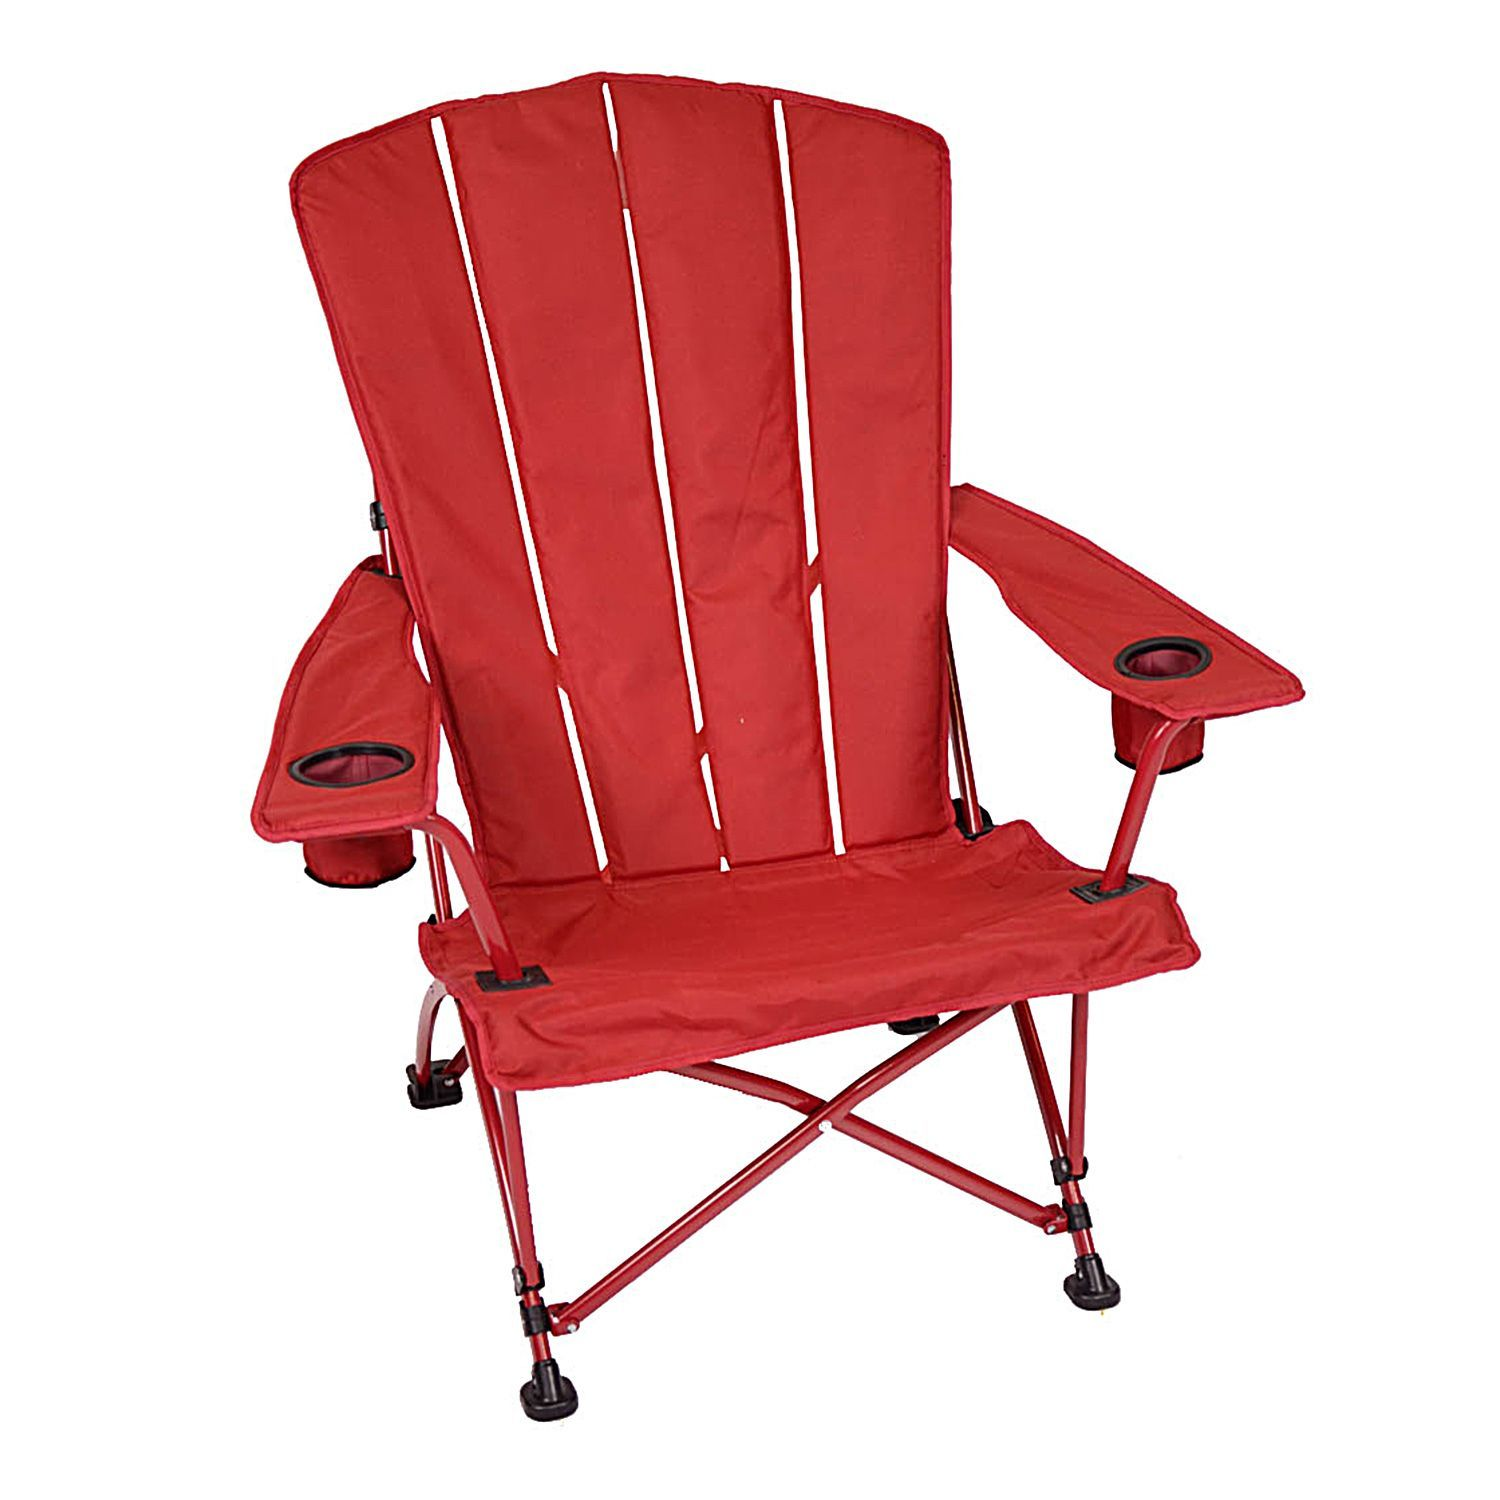 most comfortable folding chair steelcase warranty foldable adirondack red sam 39s club